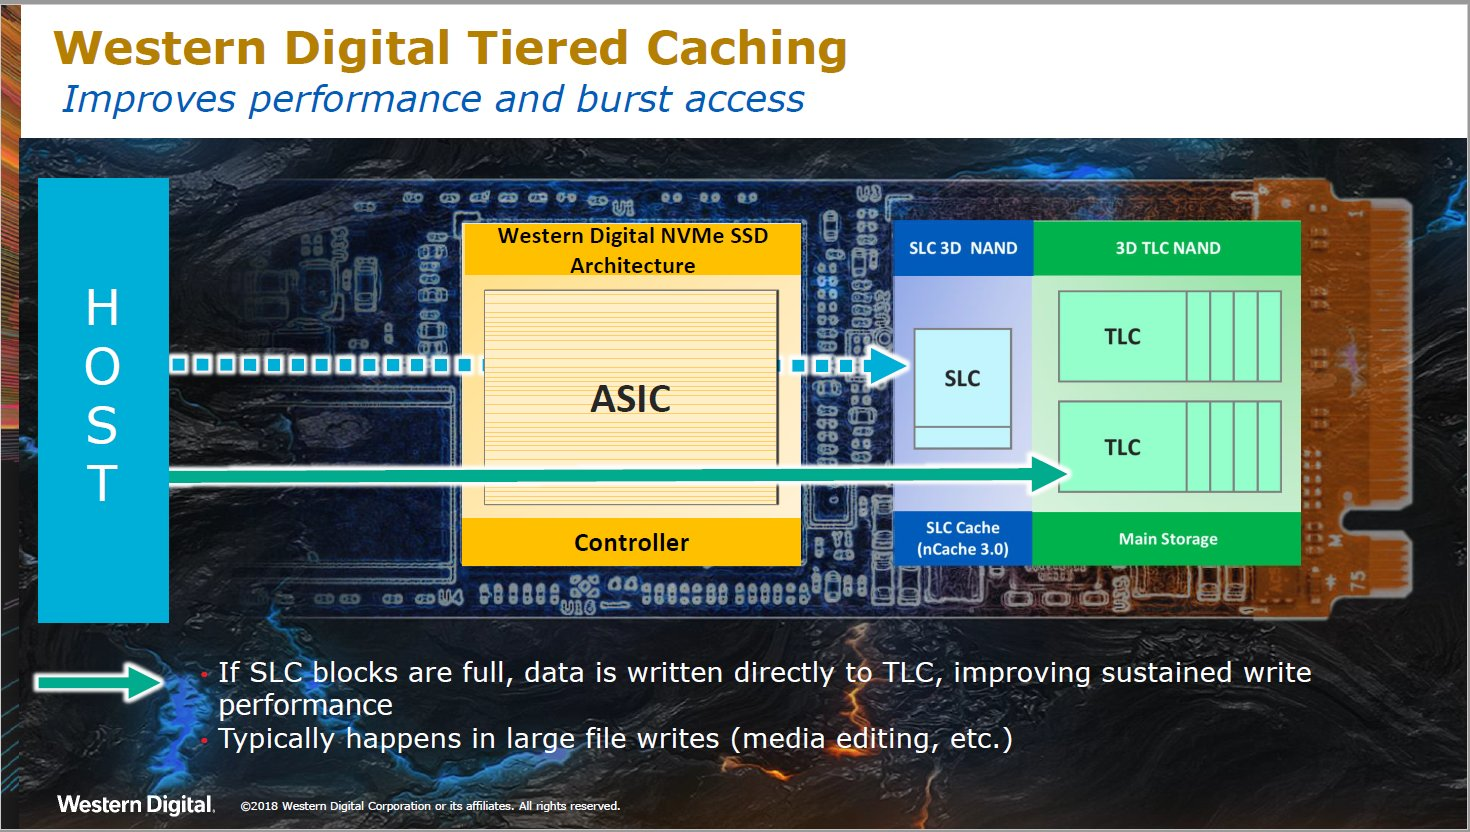 Tiered Caching